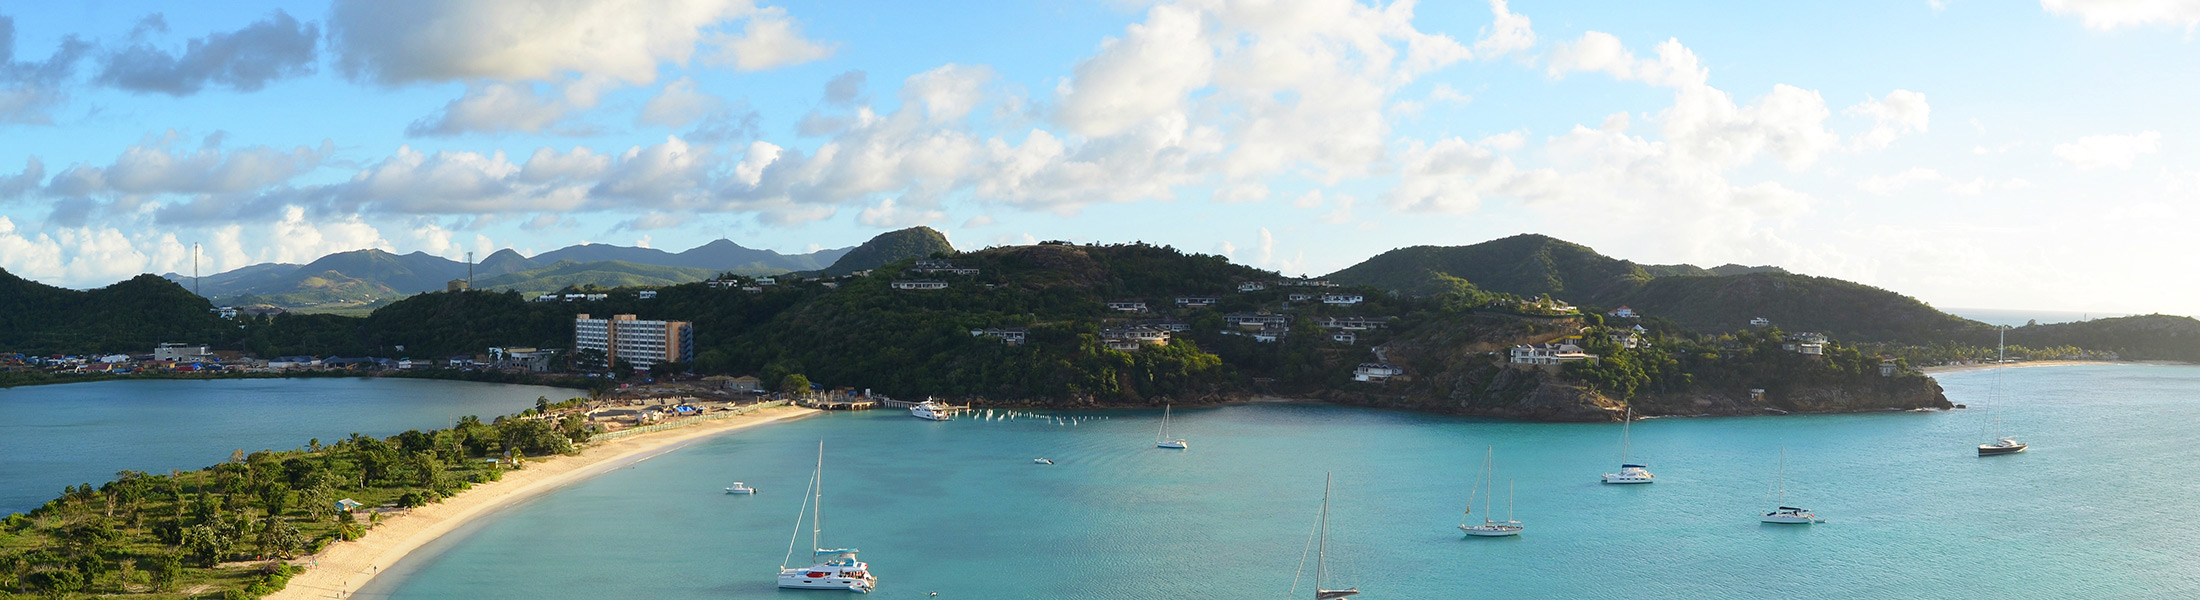 Aerial view of a bay in Antigua